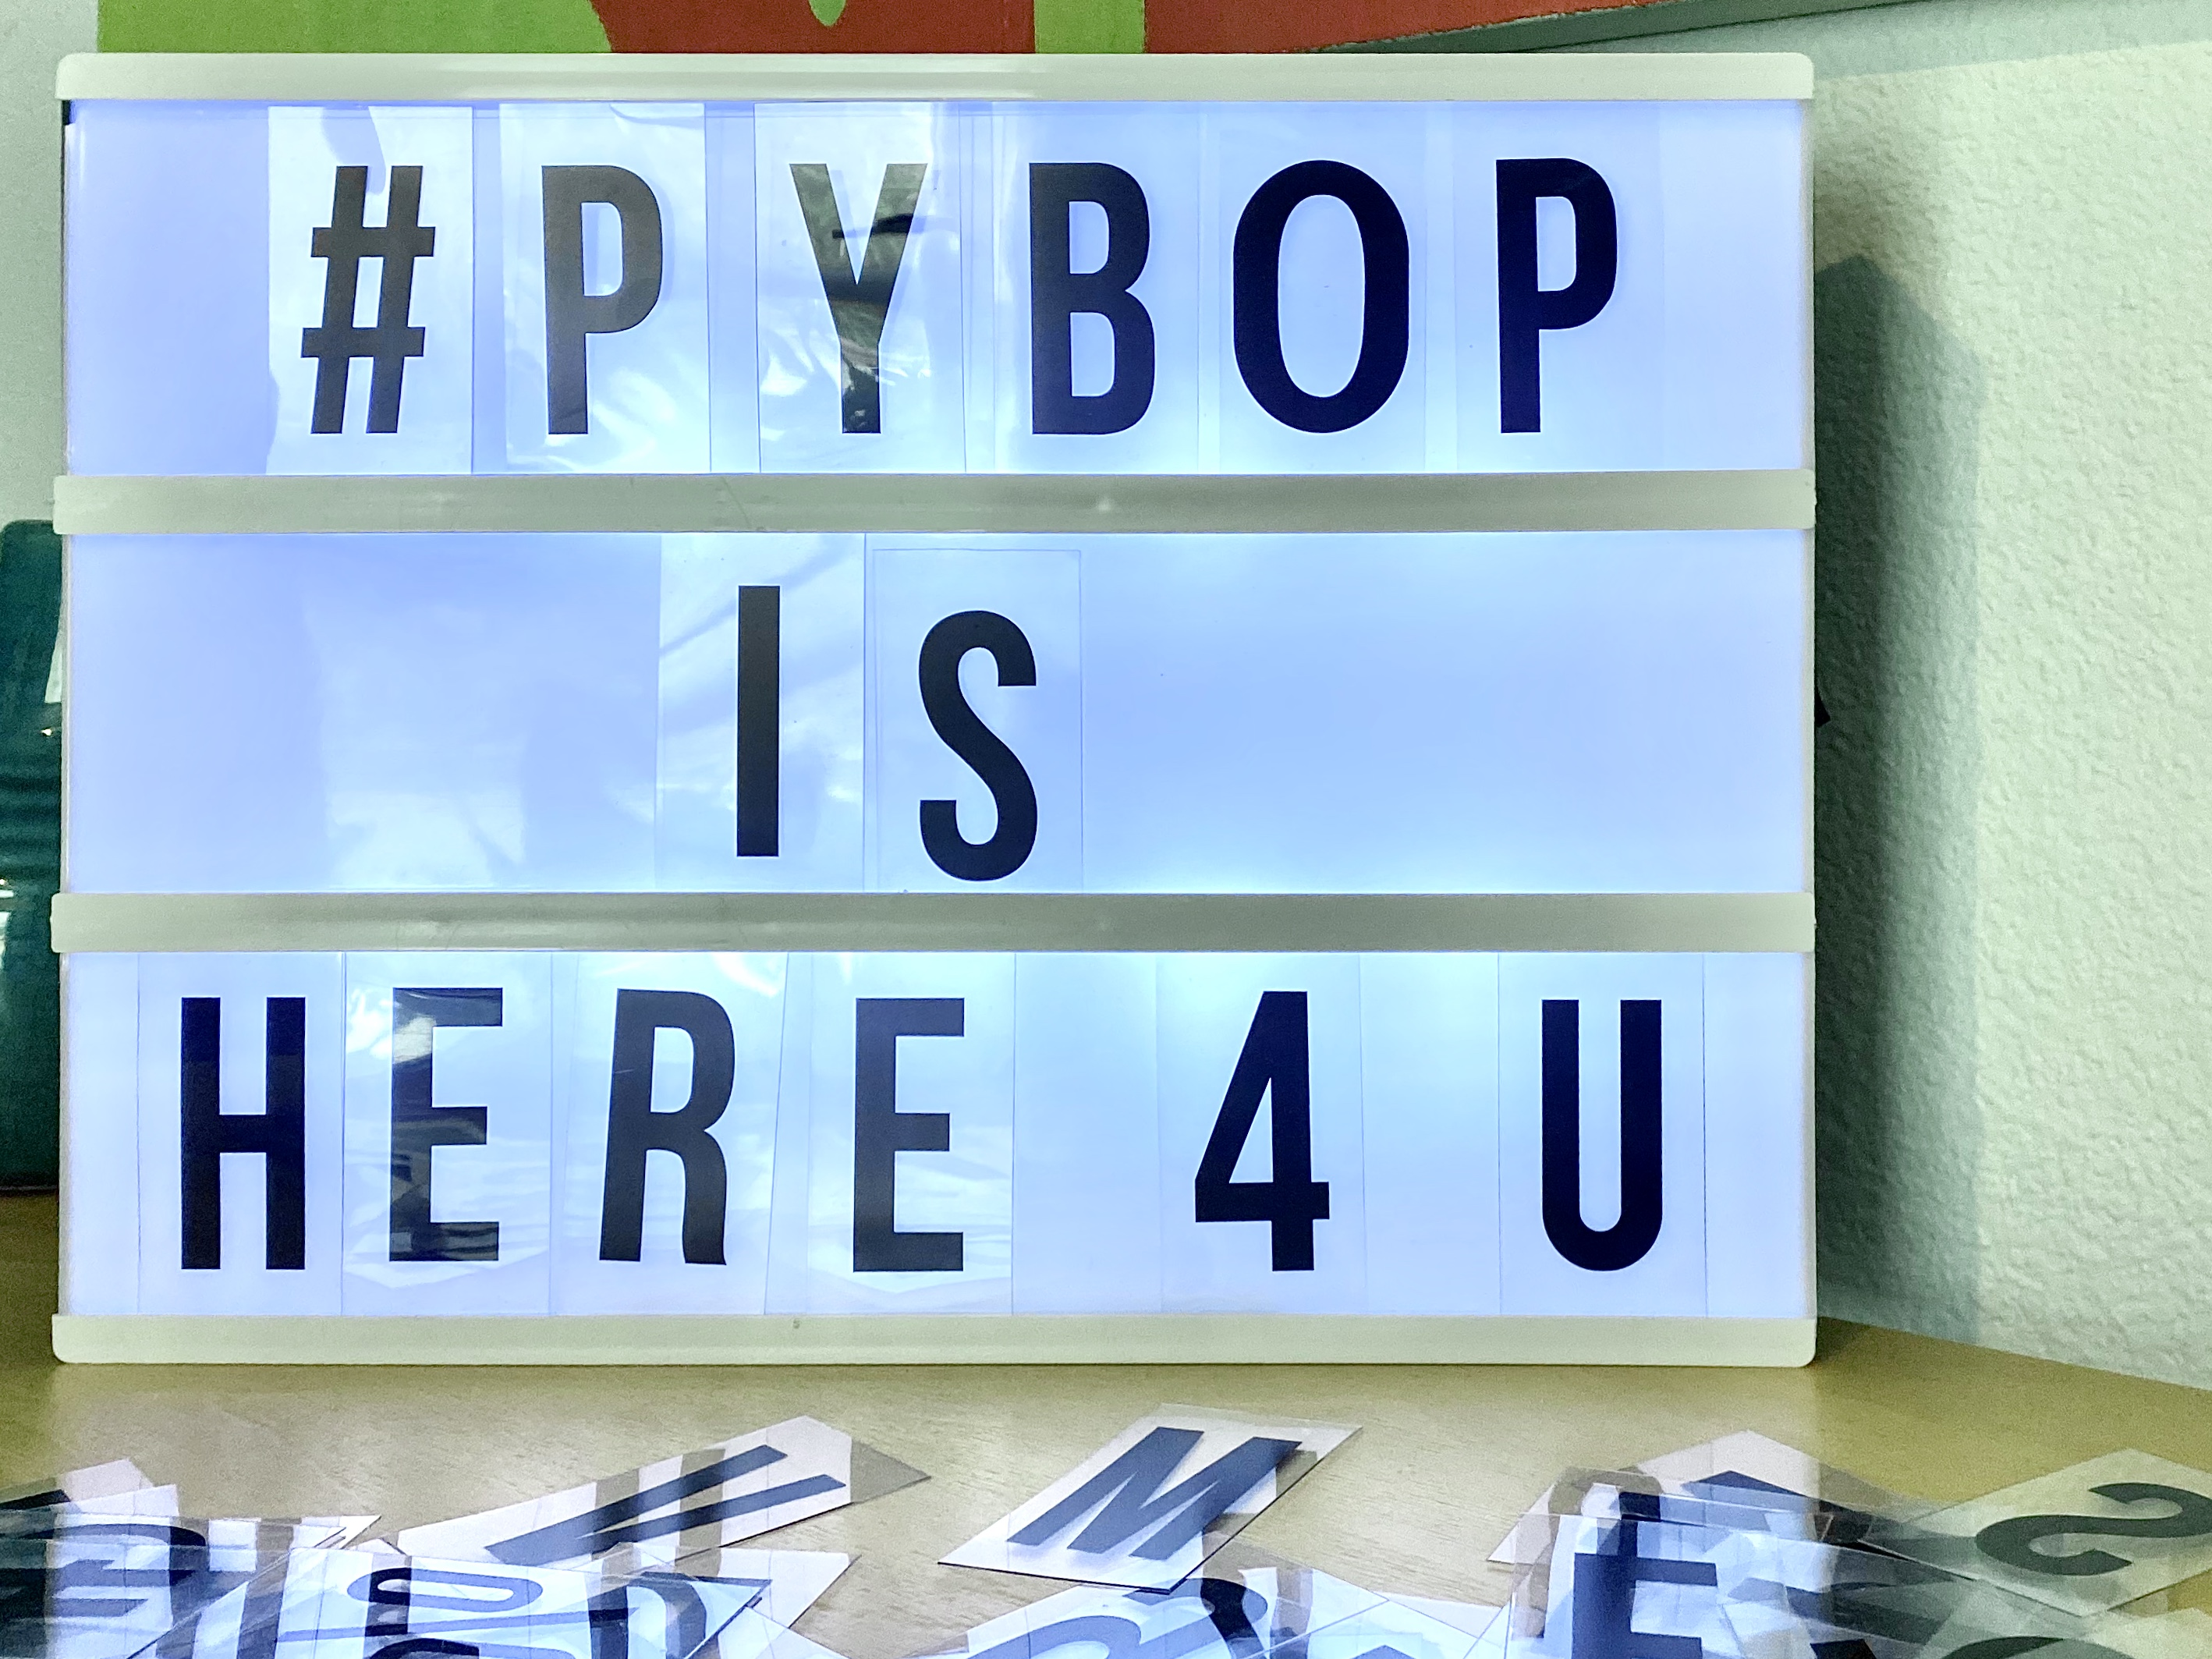 Pybop is here for you!